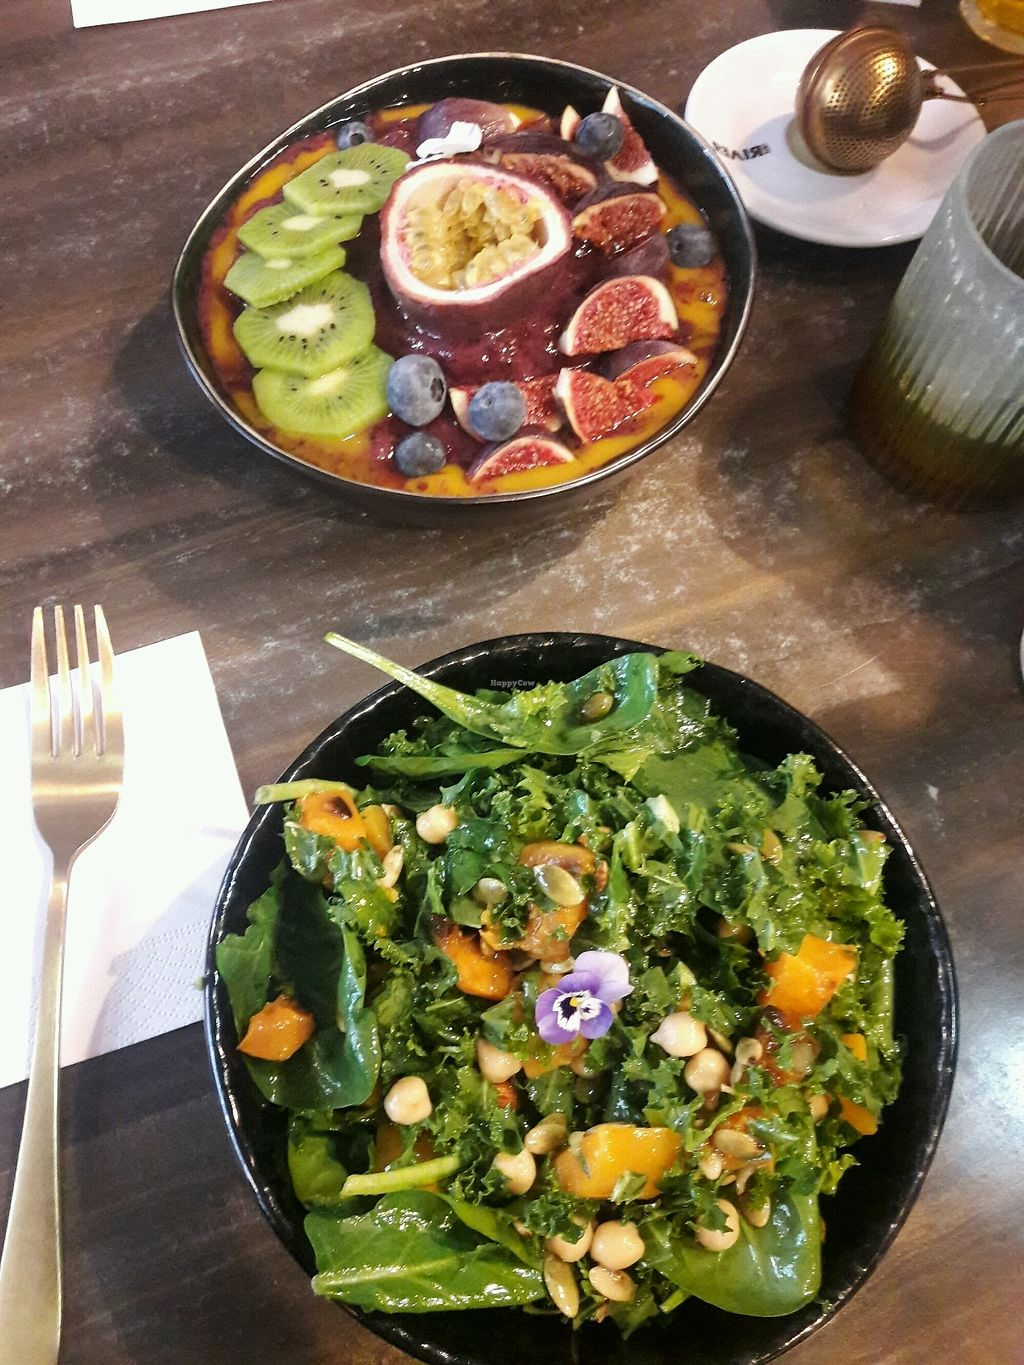 """Photo of Cafe Feel Good  by <a href=""""/members/profile/piffelina"""">piffelina</a> <br/>Butternut salad and breakfast bowl <br/> December 3, 2017  - <a href='/contact/abuse/image/98918/331680'>Report</a>"""